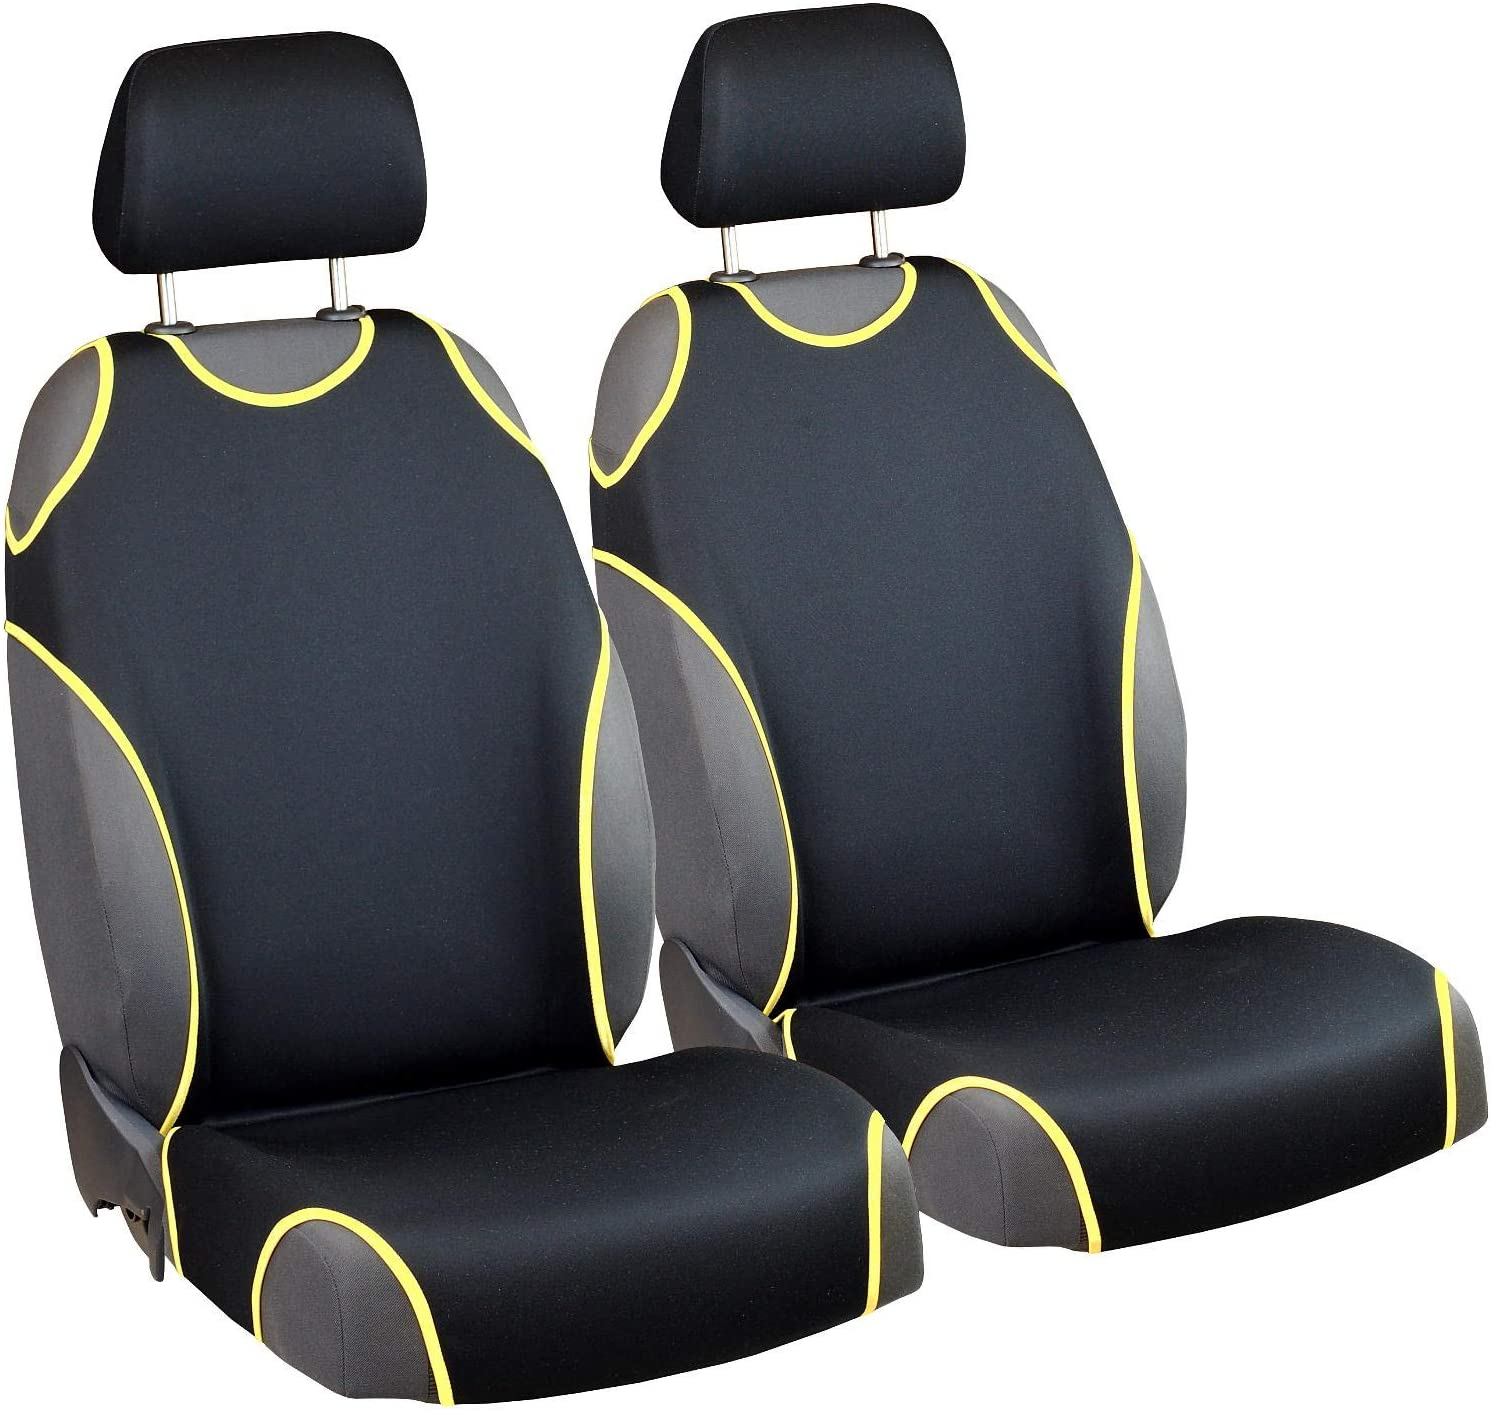 Zakschneider Car Seat Covers for Freemont - Front Seats - Color Premium Black & Yellow